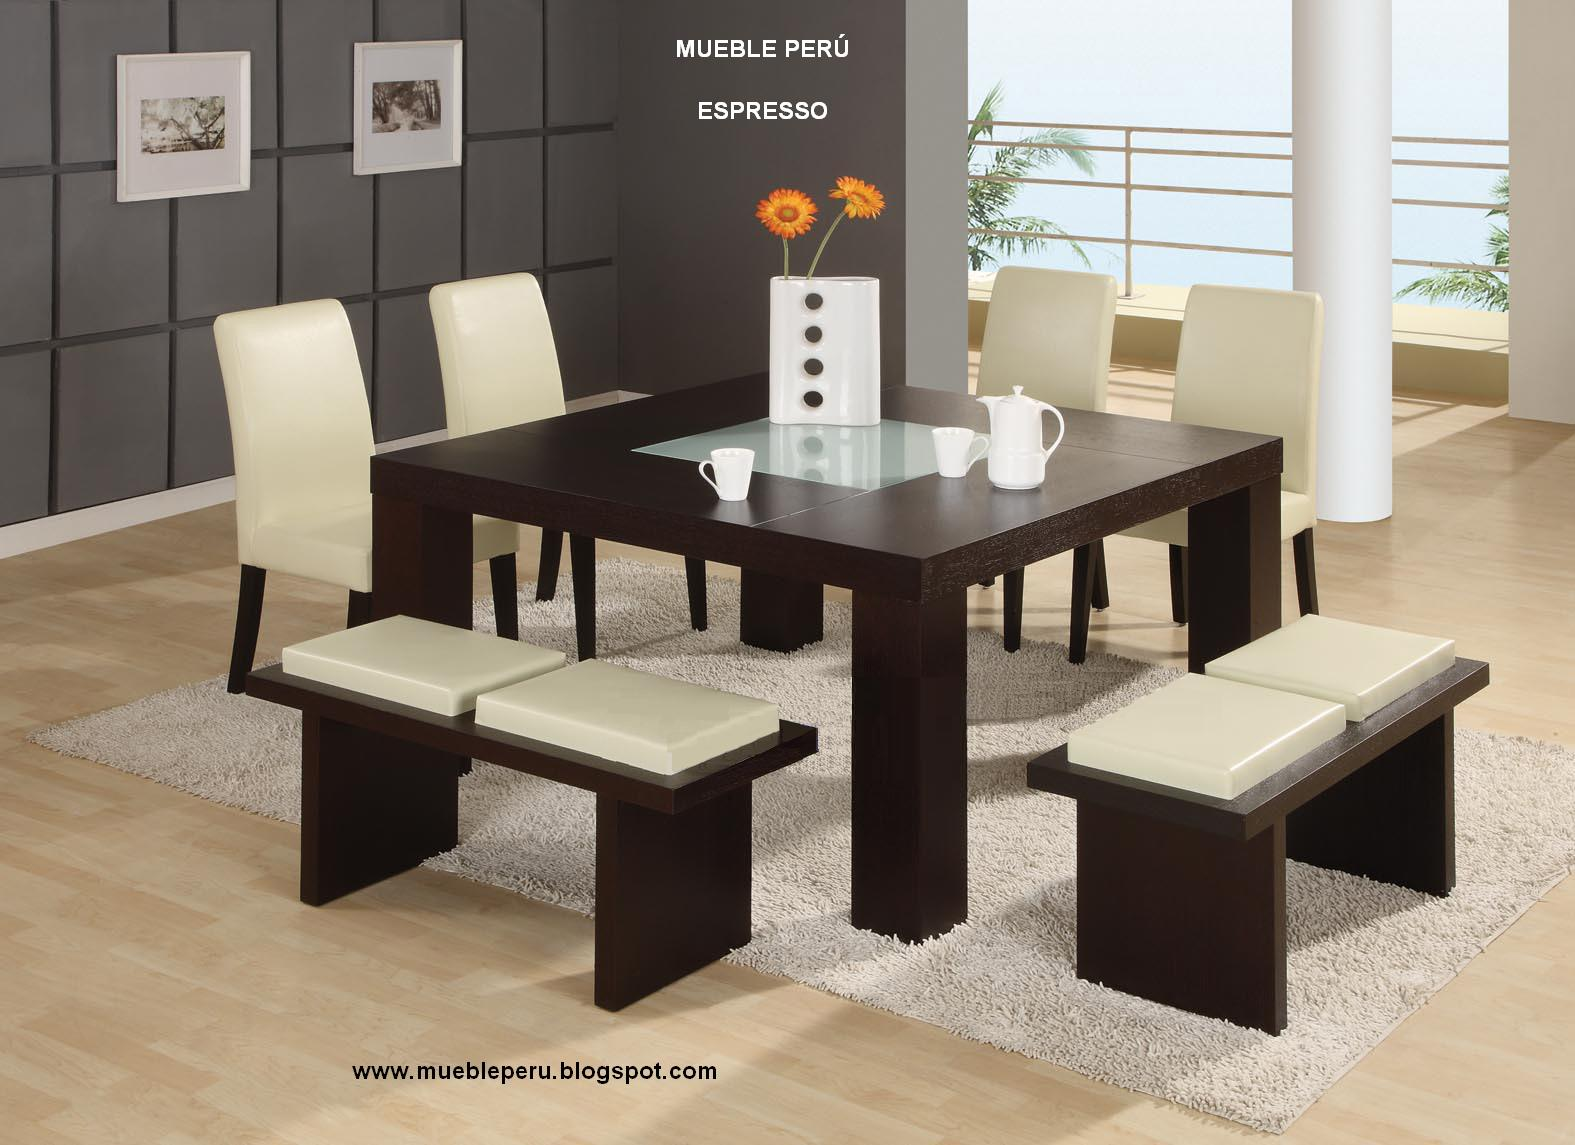 Muebles pegaso exclusivos y modernos comedores for Catalogo de sillas de madera